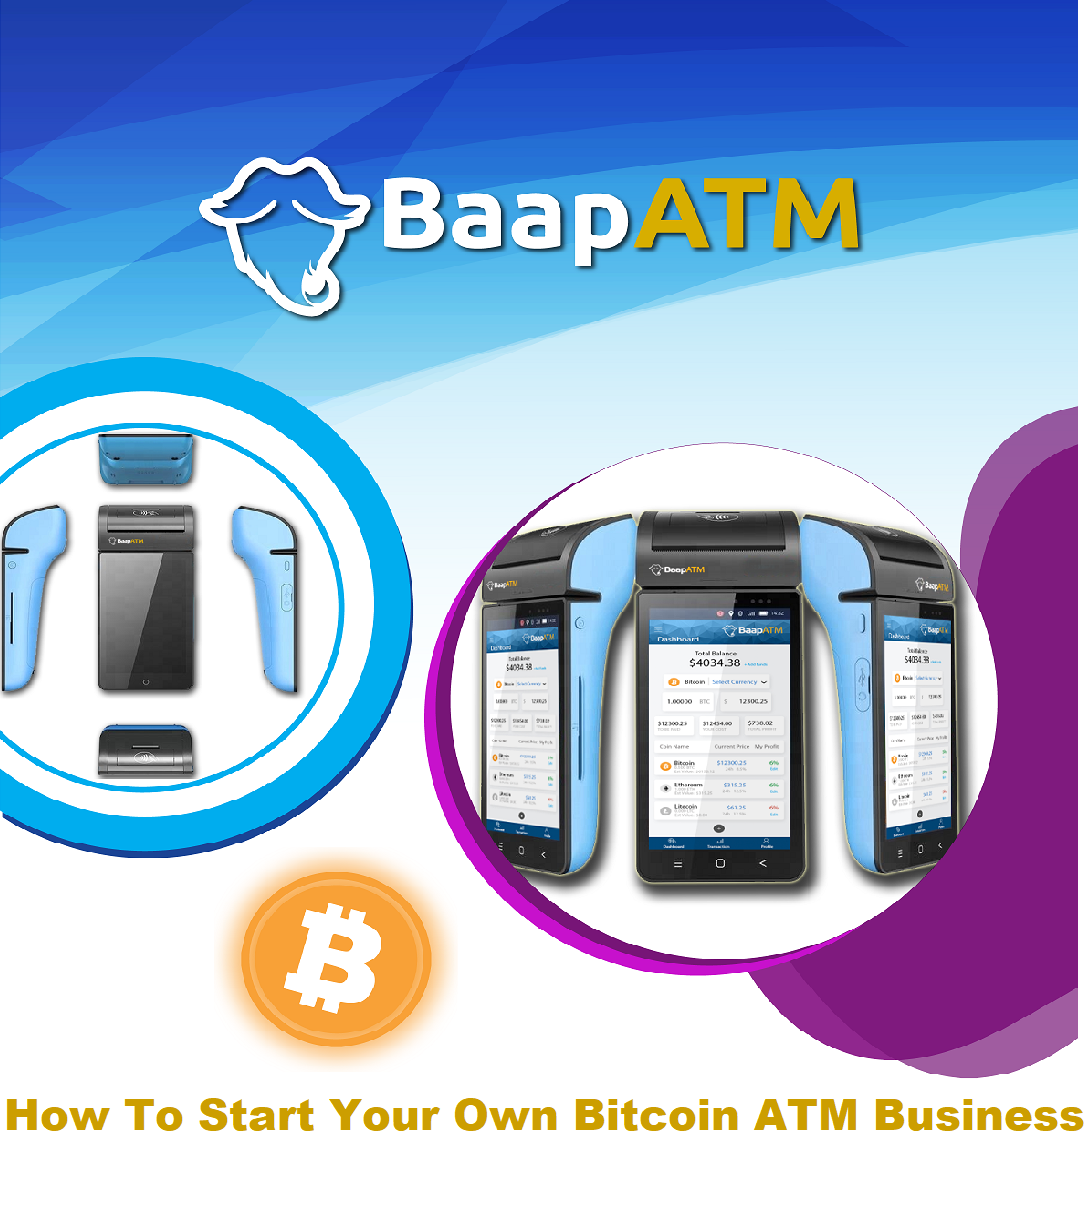 How To Start Your Own Bitcoin ATM Business